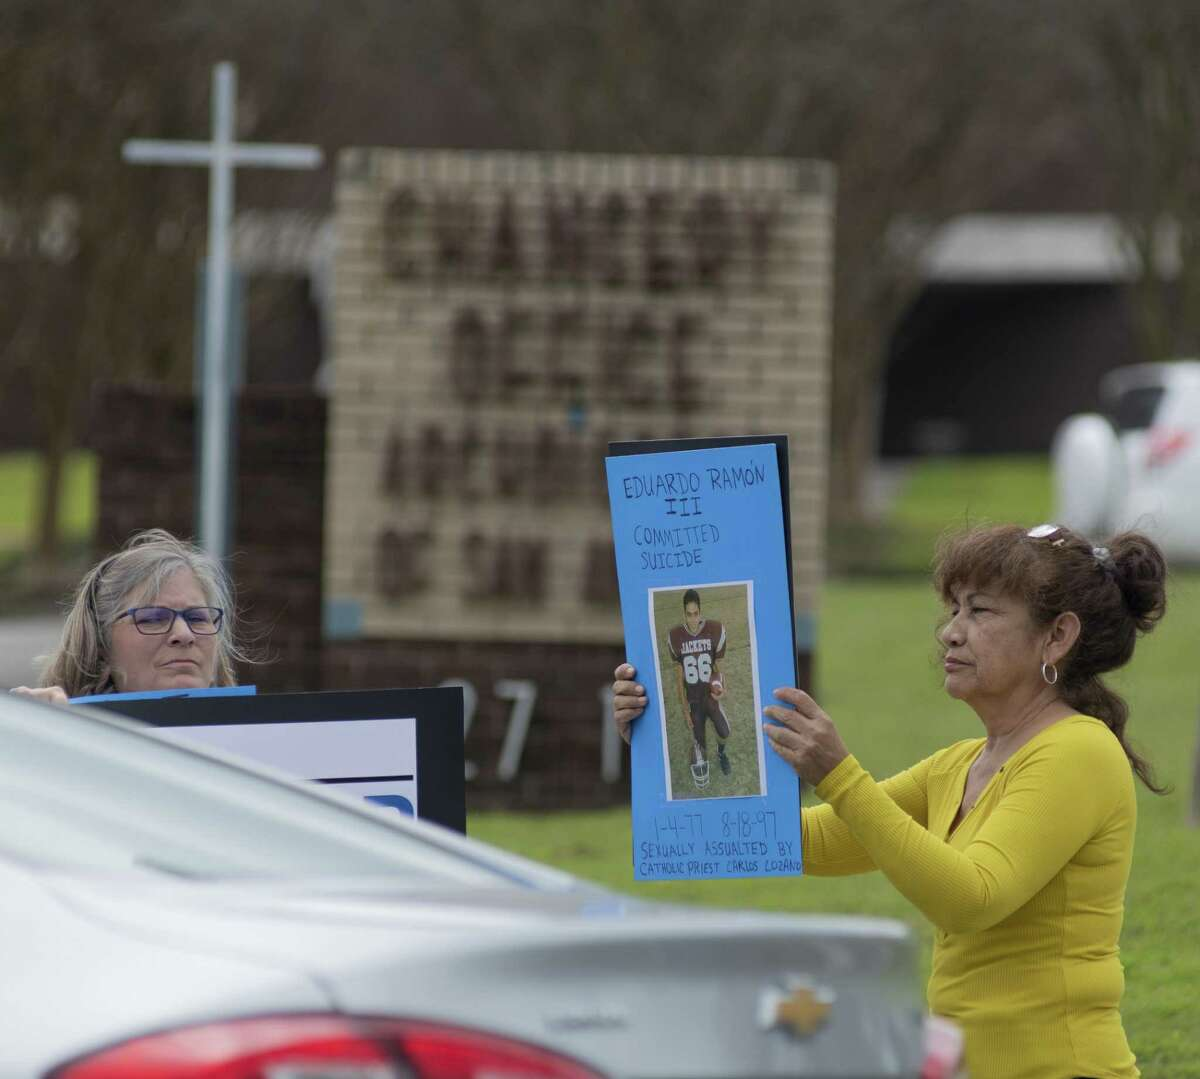 """Barbara Garcia Boeland, left, holds a sign with a picture of her son Eduardo Ramon III who committed suicided in 1997 after being sexually assaulted by Catholic priest Carlos Lozano and Patti Waller Koo holds a sing with another victim of sexual assault who did not want to be identified by name during press conference on Friday, March 8, 2019 outside the San Antonio archdiocesan headquarters discussing the finding of four more priests who have served in San Antonio and have been credibly accused abuser priests. These four priests were not named in the initial affidavit, according to members of the Survivors Network of those Abused by Priests. They urged church officials to add these and other names to their official ?""""accused?• list, warn several schools that a credibly accused abusive priest lives nearby, and disclose whether other alleged predators are living at the same facility."""